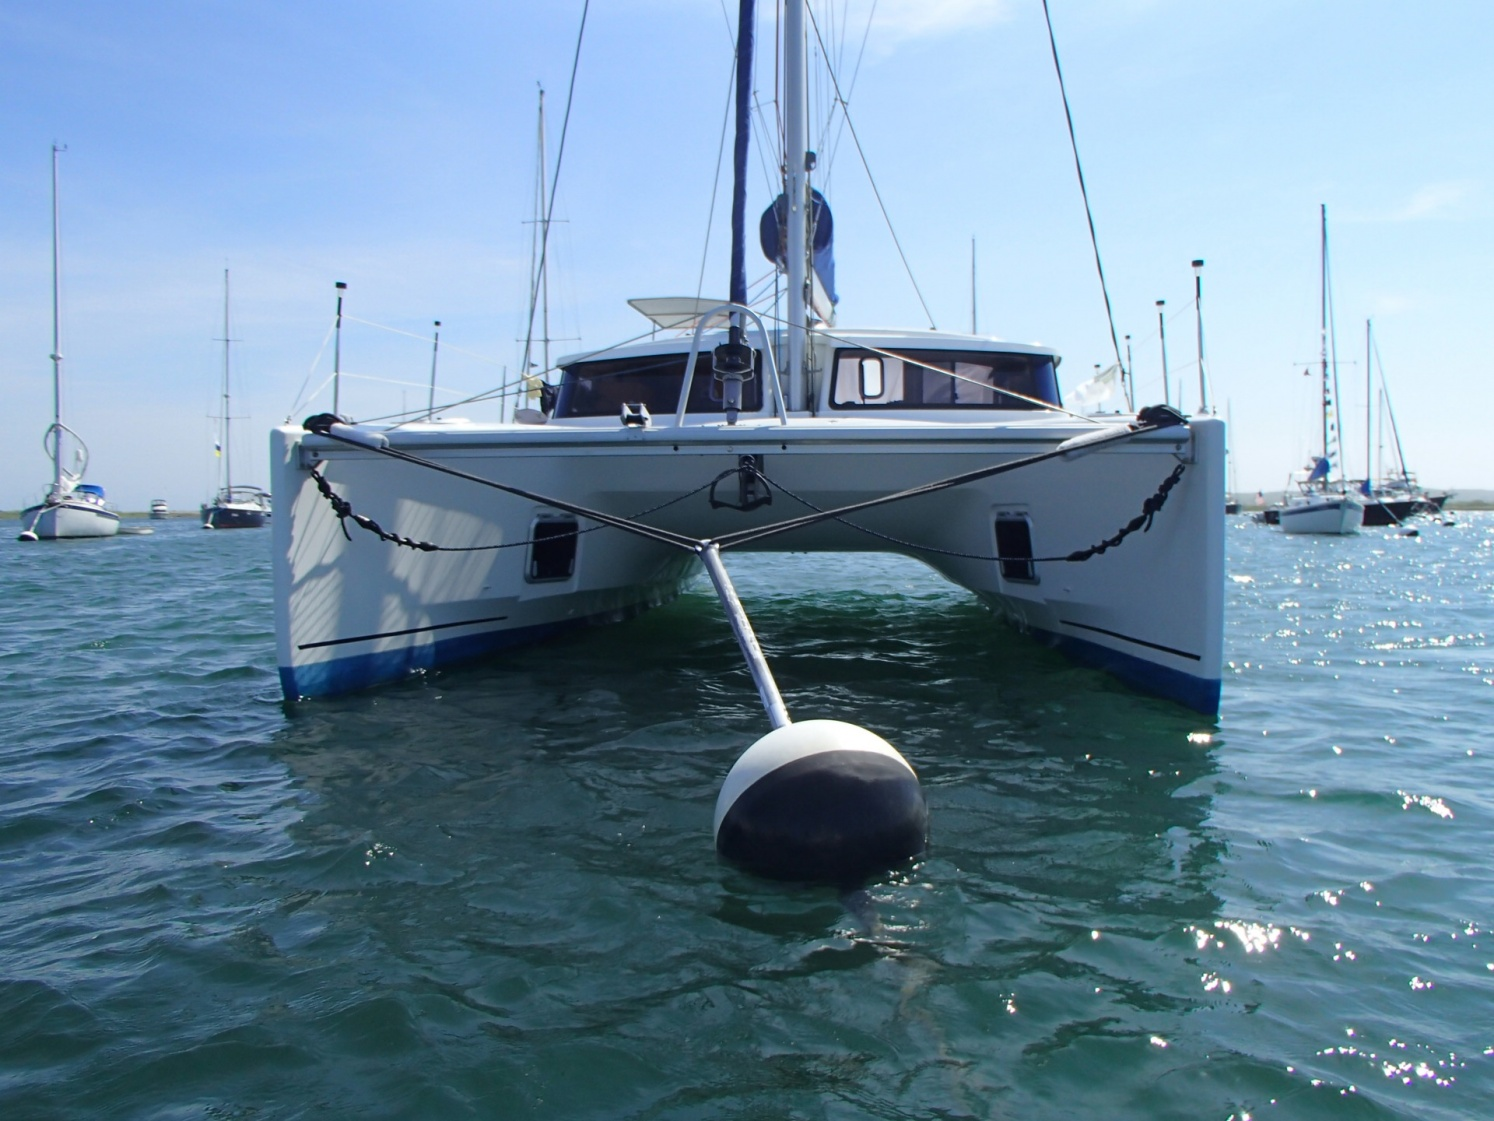 Click image for larger version  Name:Catatude on Mooring.jpg Views:113 Size:412.8 KB ID:64532